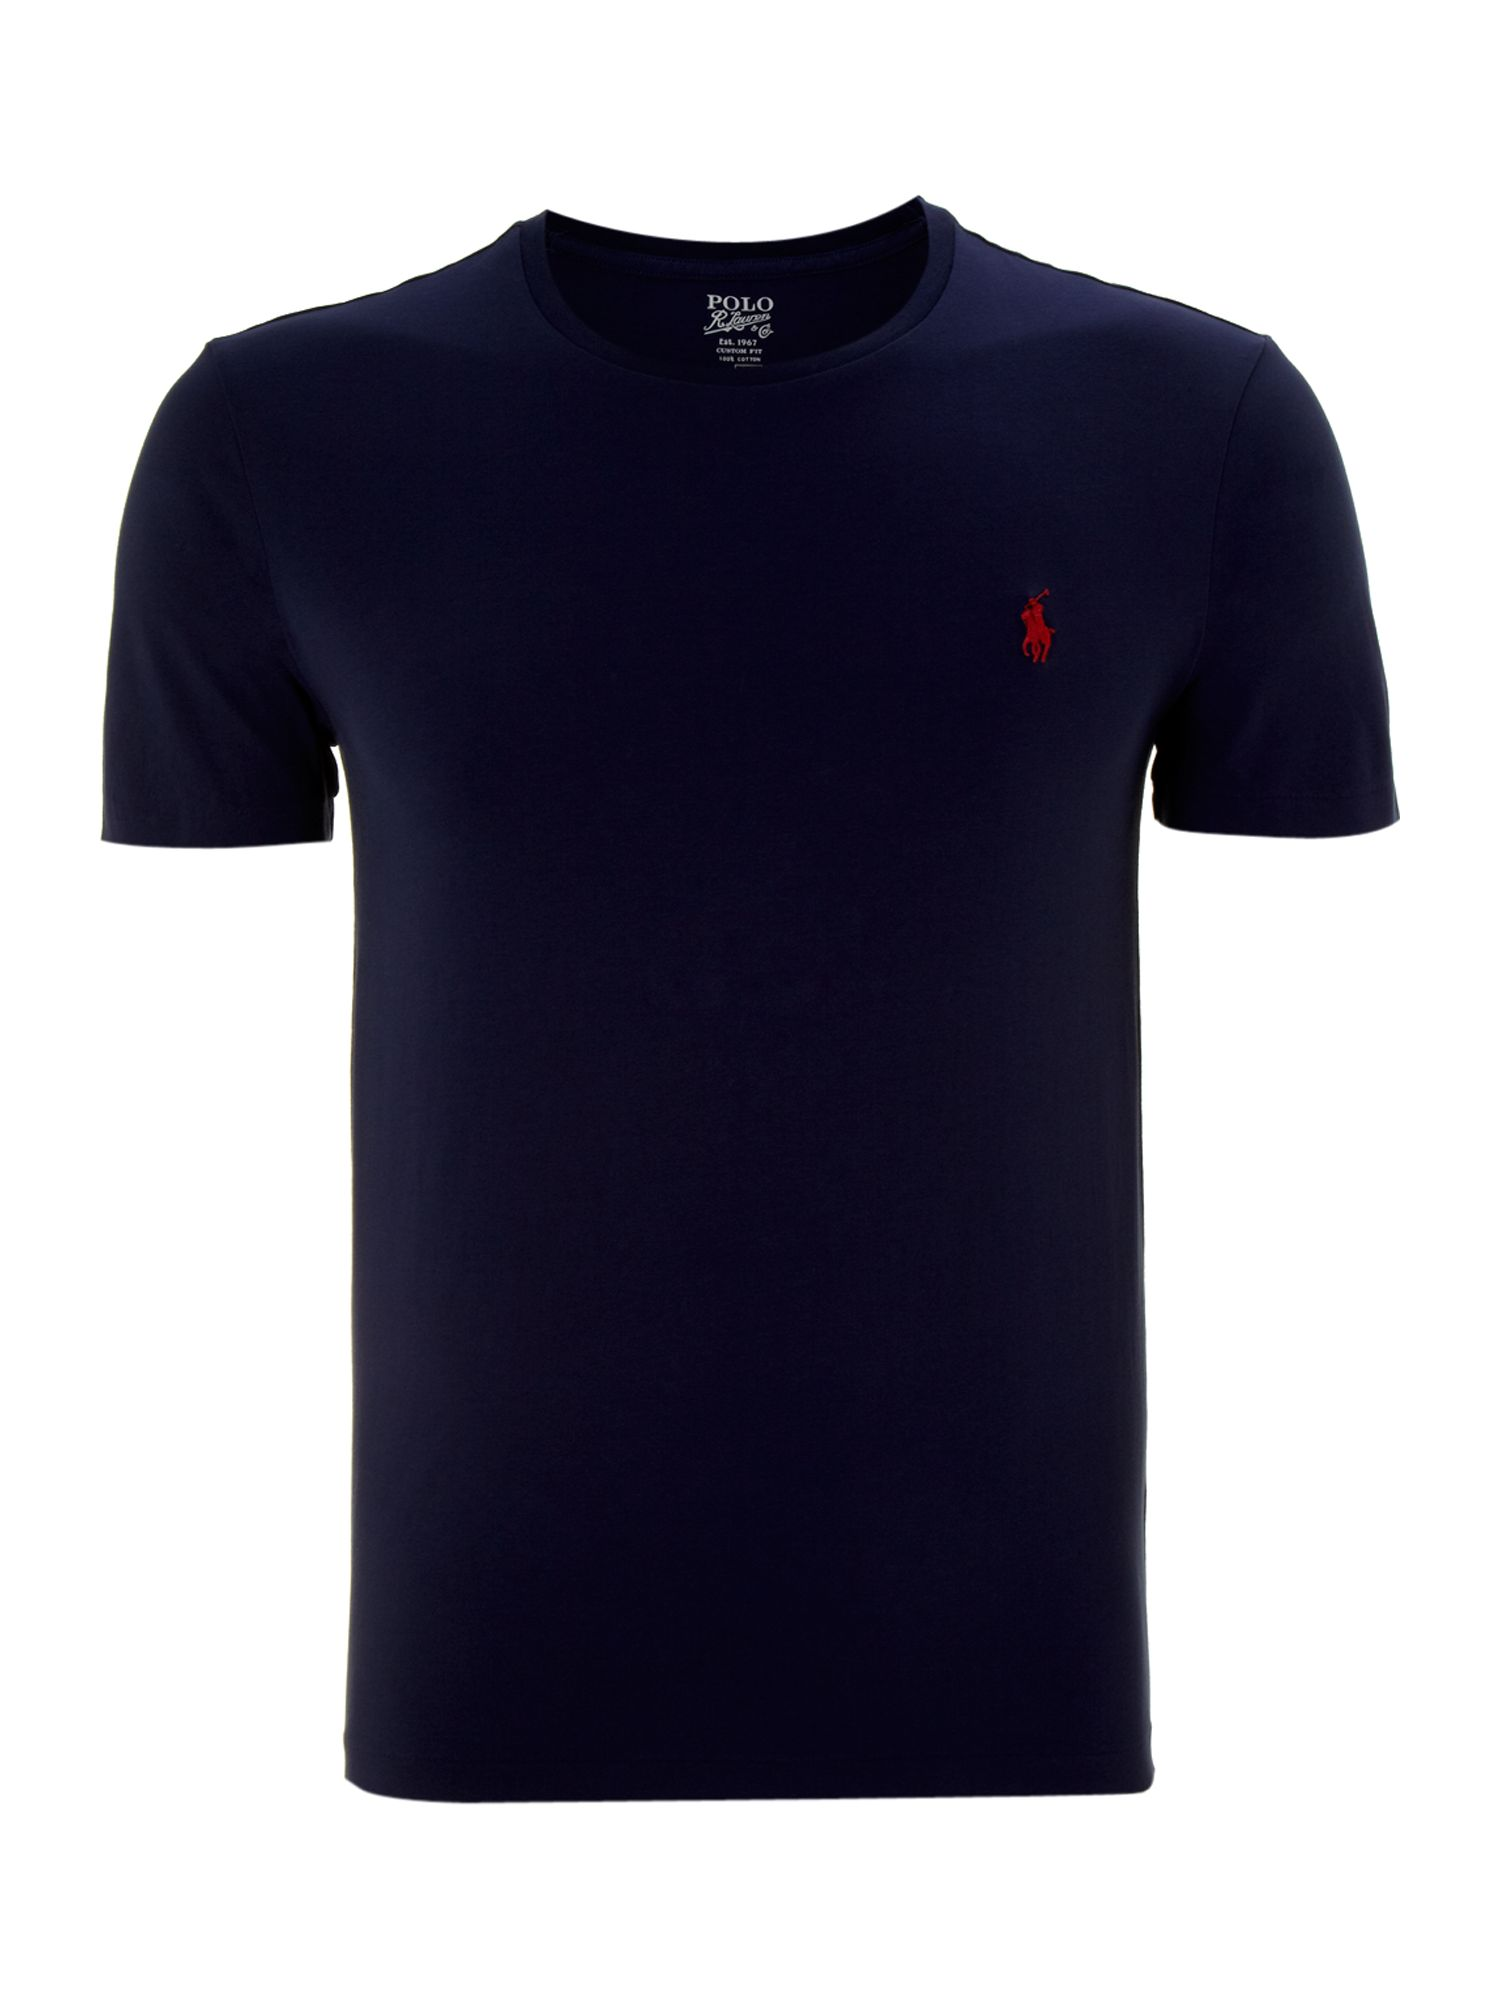 Jersey solid custom fit crew neck T-shirt